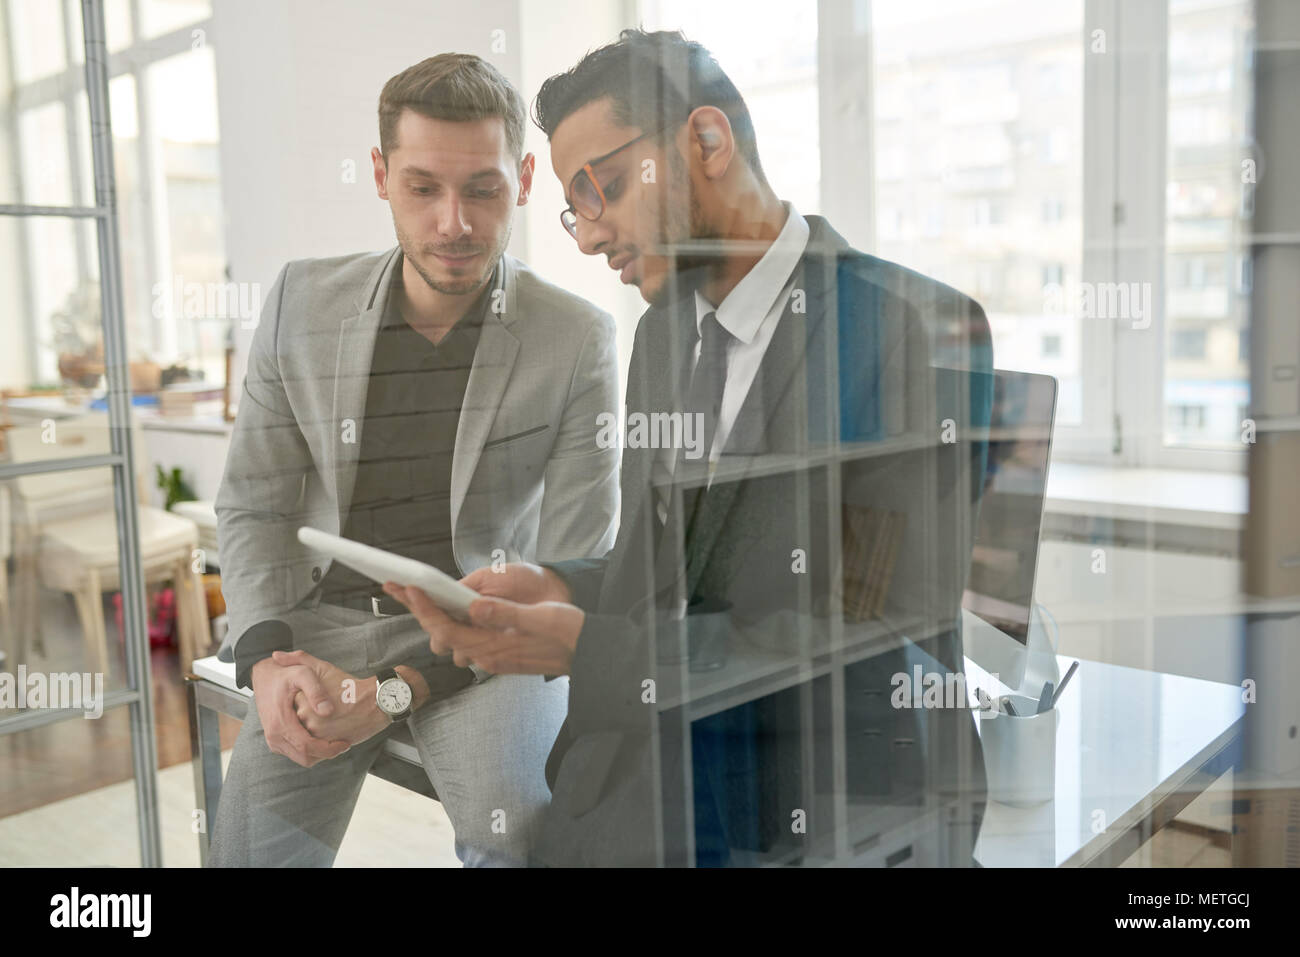 Colleagues Analyzing Statistic Data - Stock Image